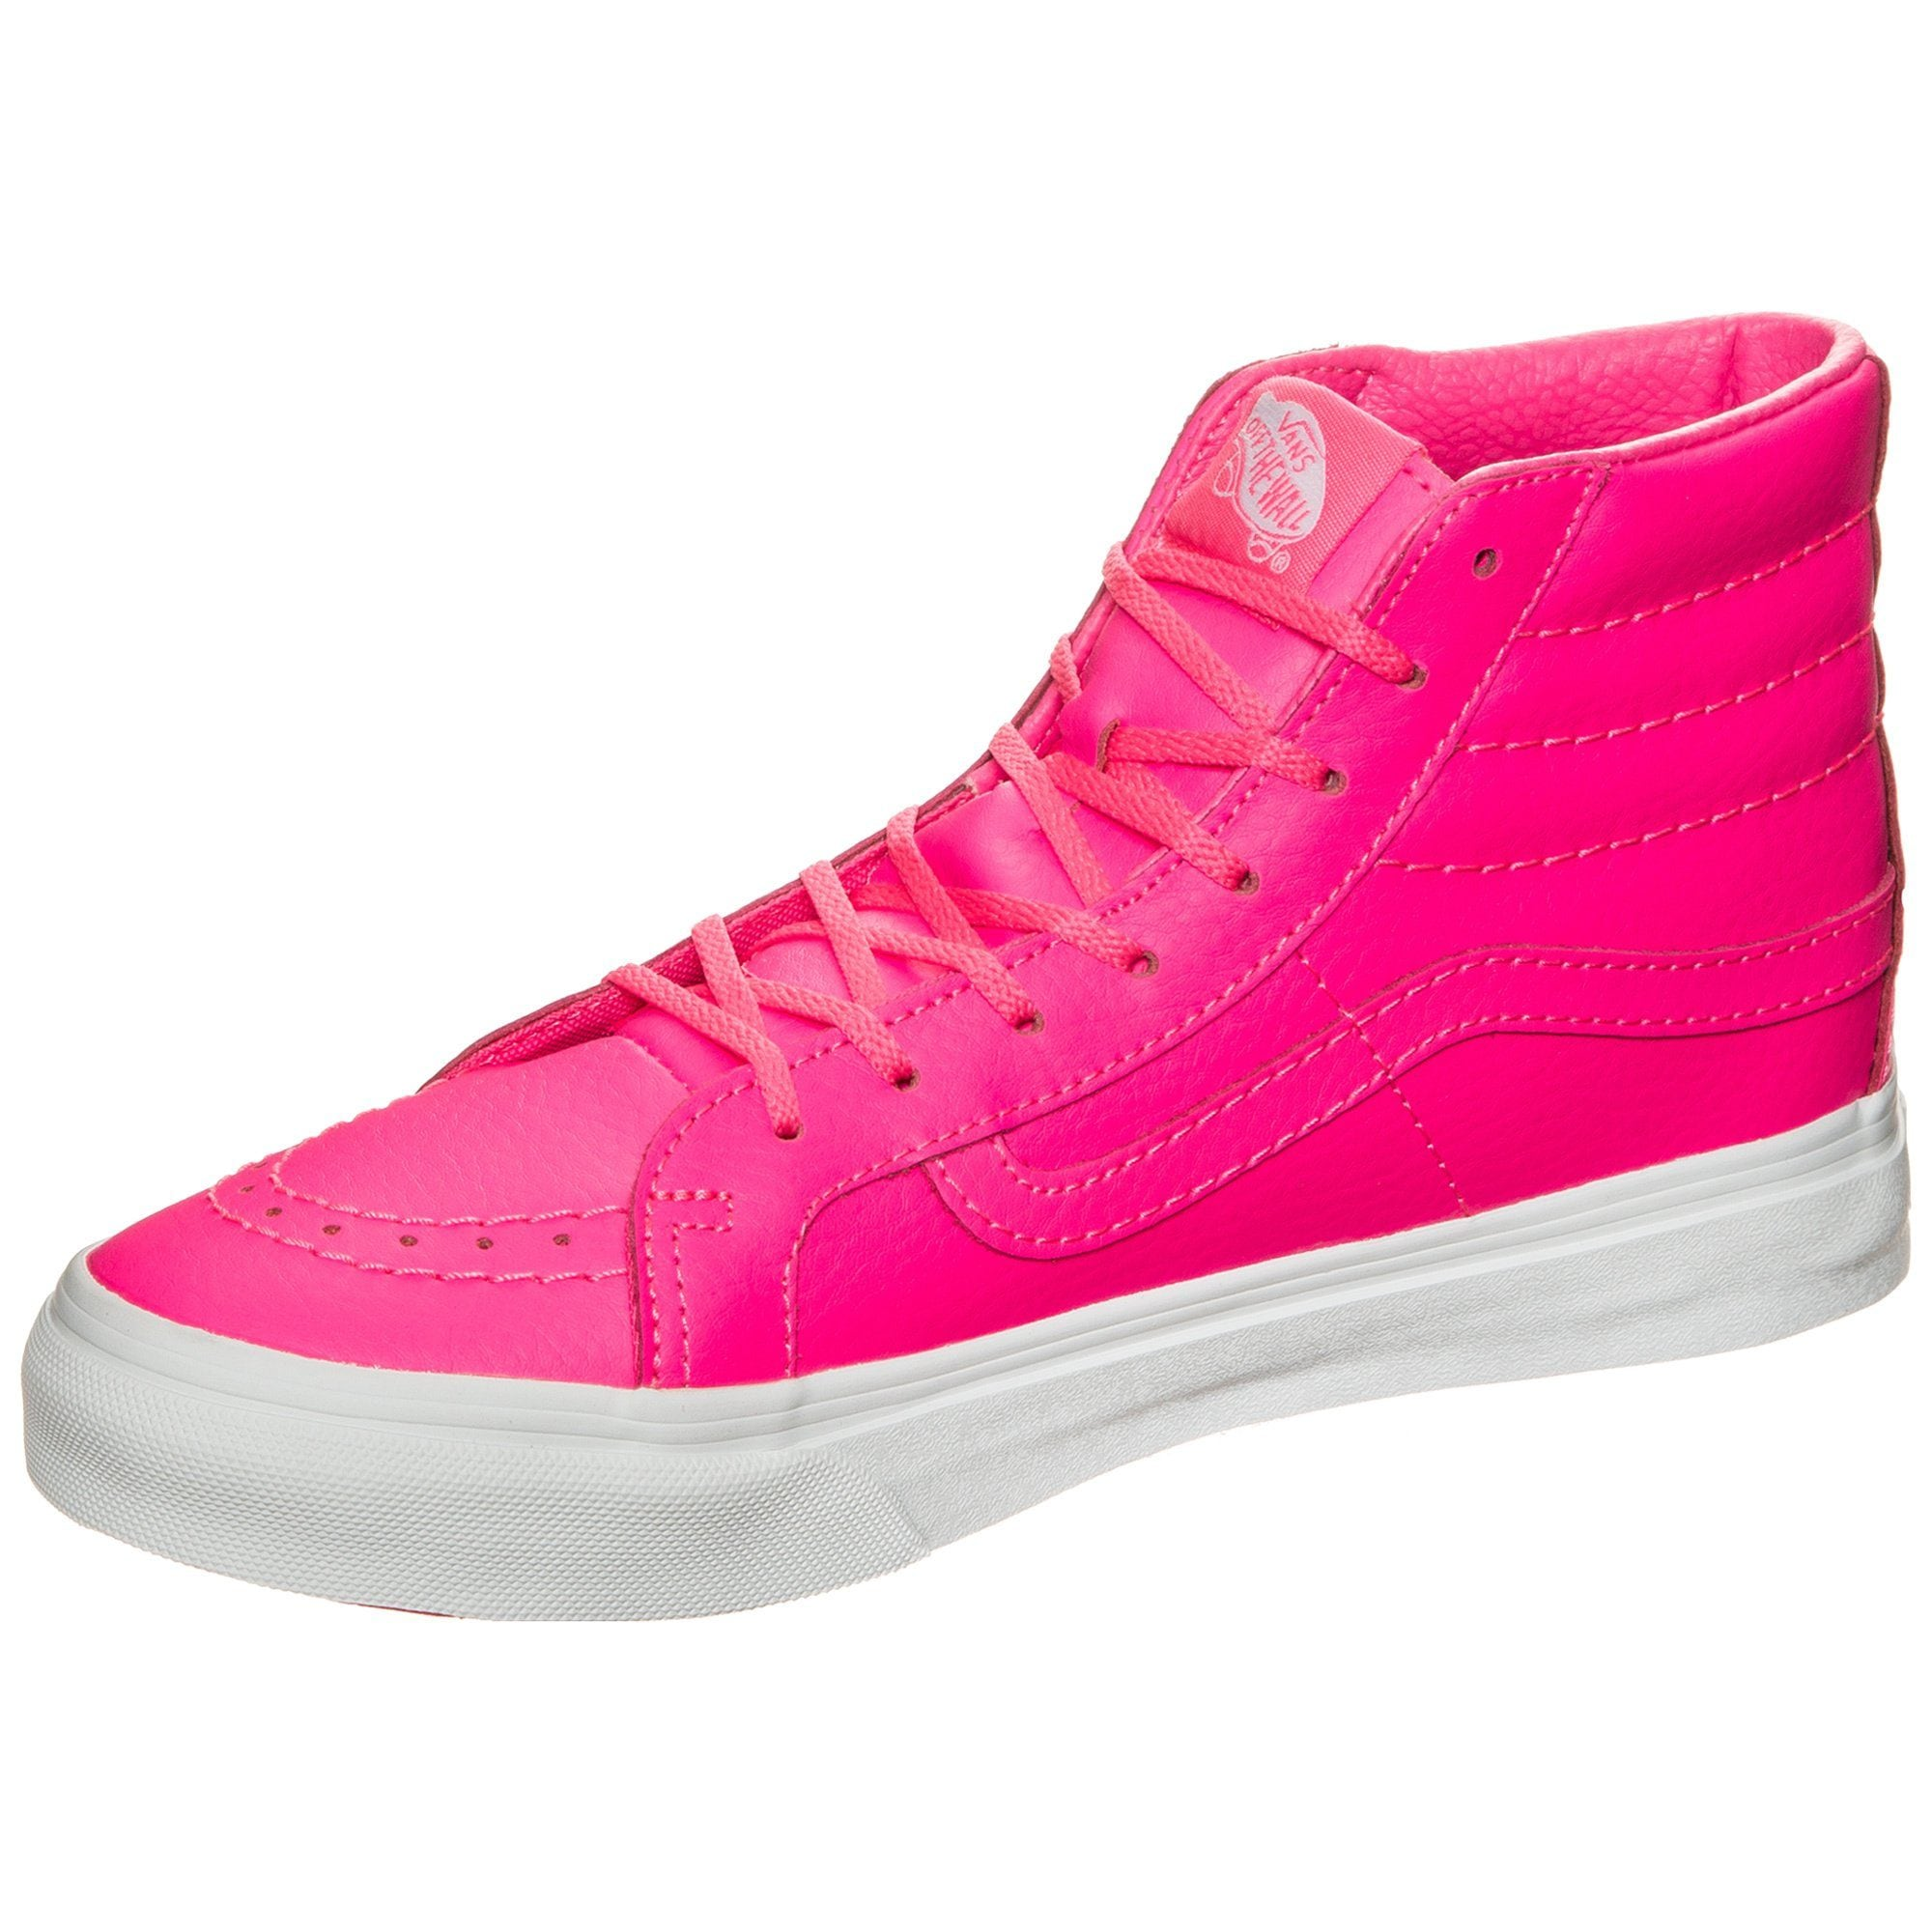 vans sneaker sk8 hi slim neon leather auf rechnung baur. Black Bedroom Furniture Sets. Home Design Ideas